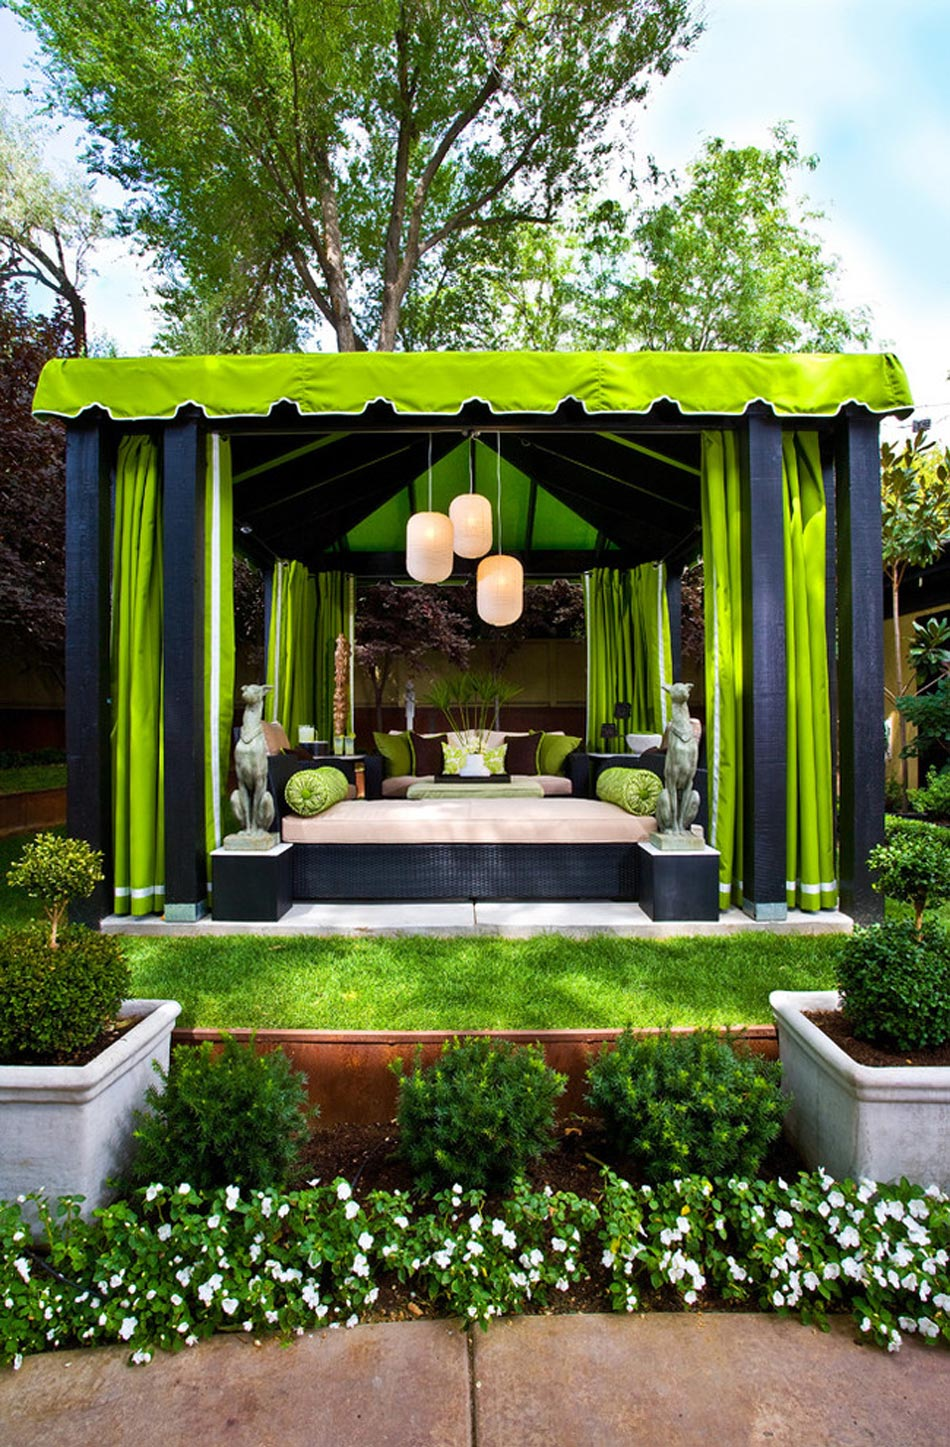 D co d int rieur ou lorsque le citron vert s invite la for Decoration mur exterieur maison